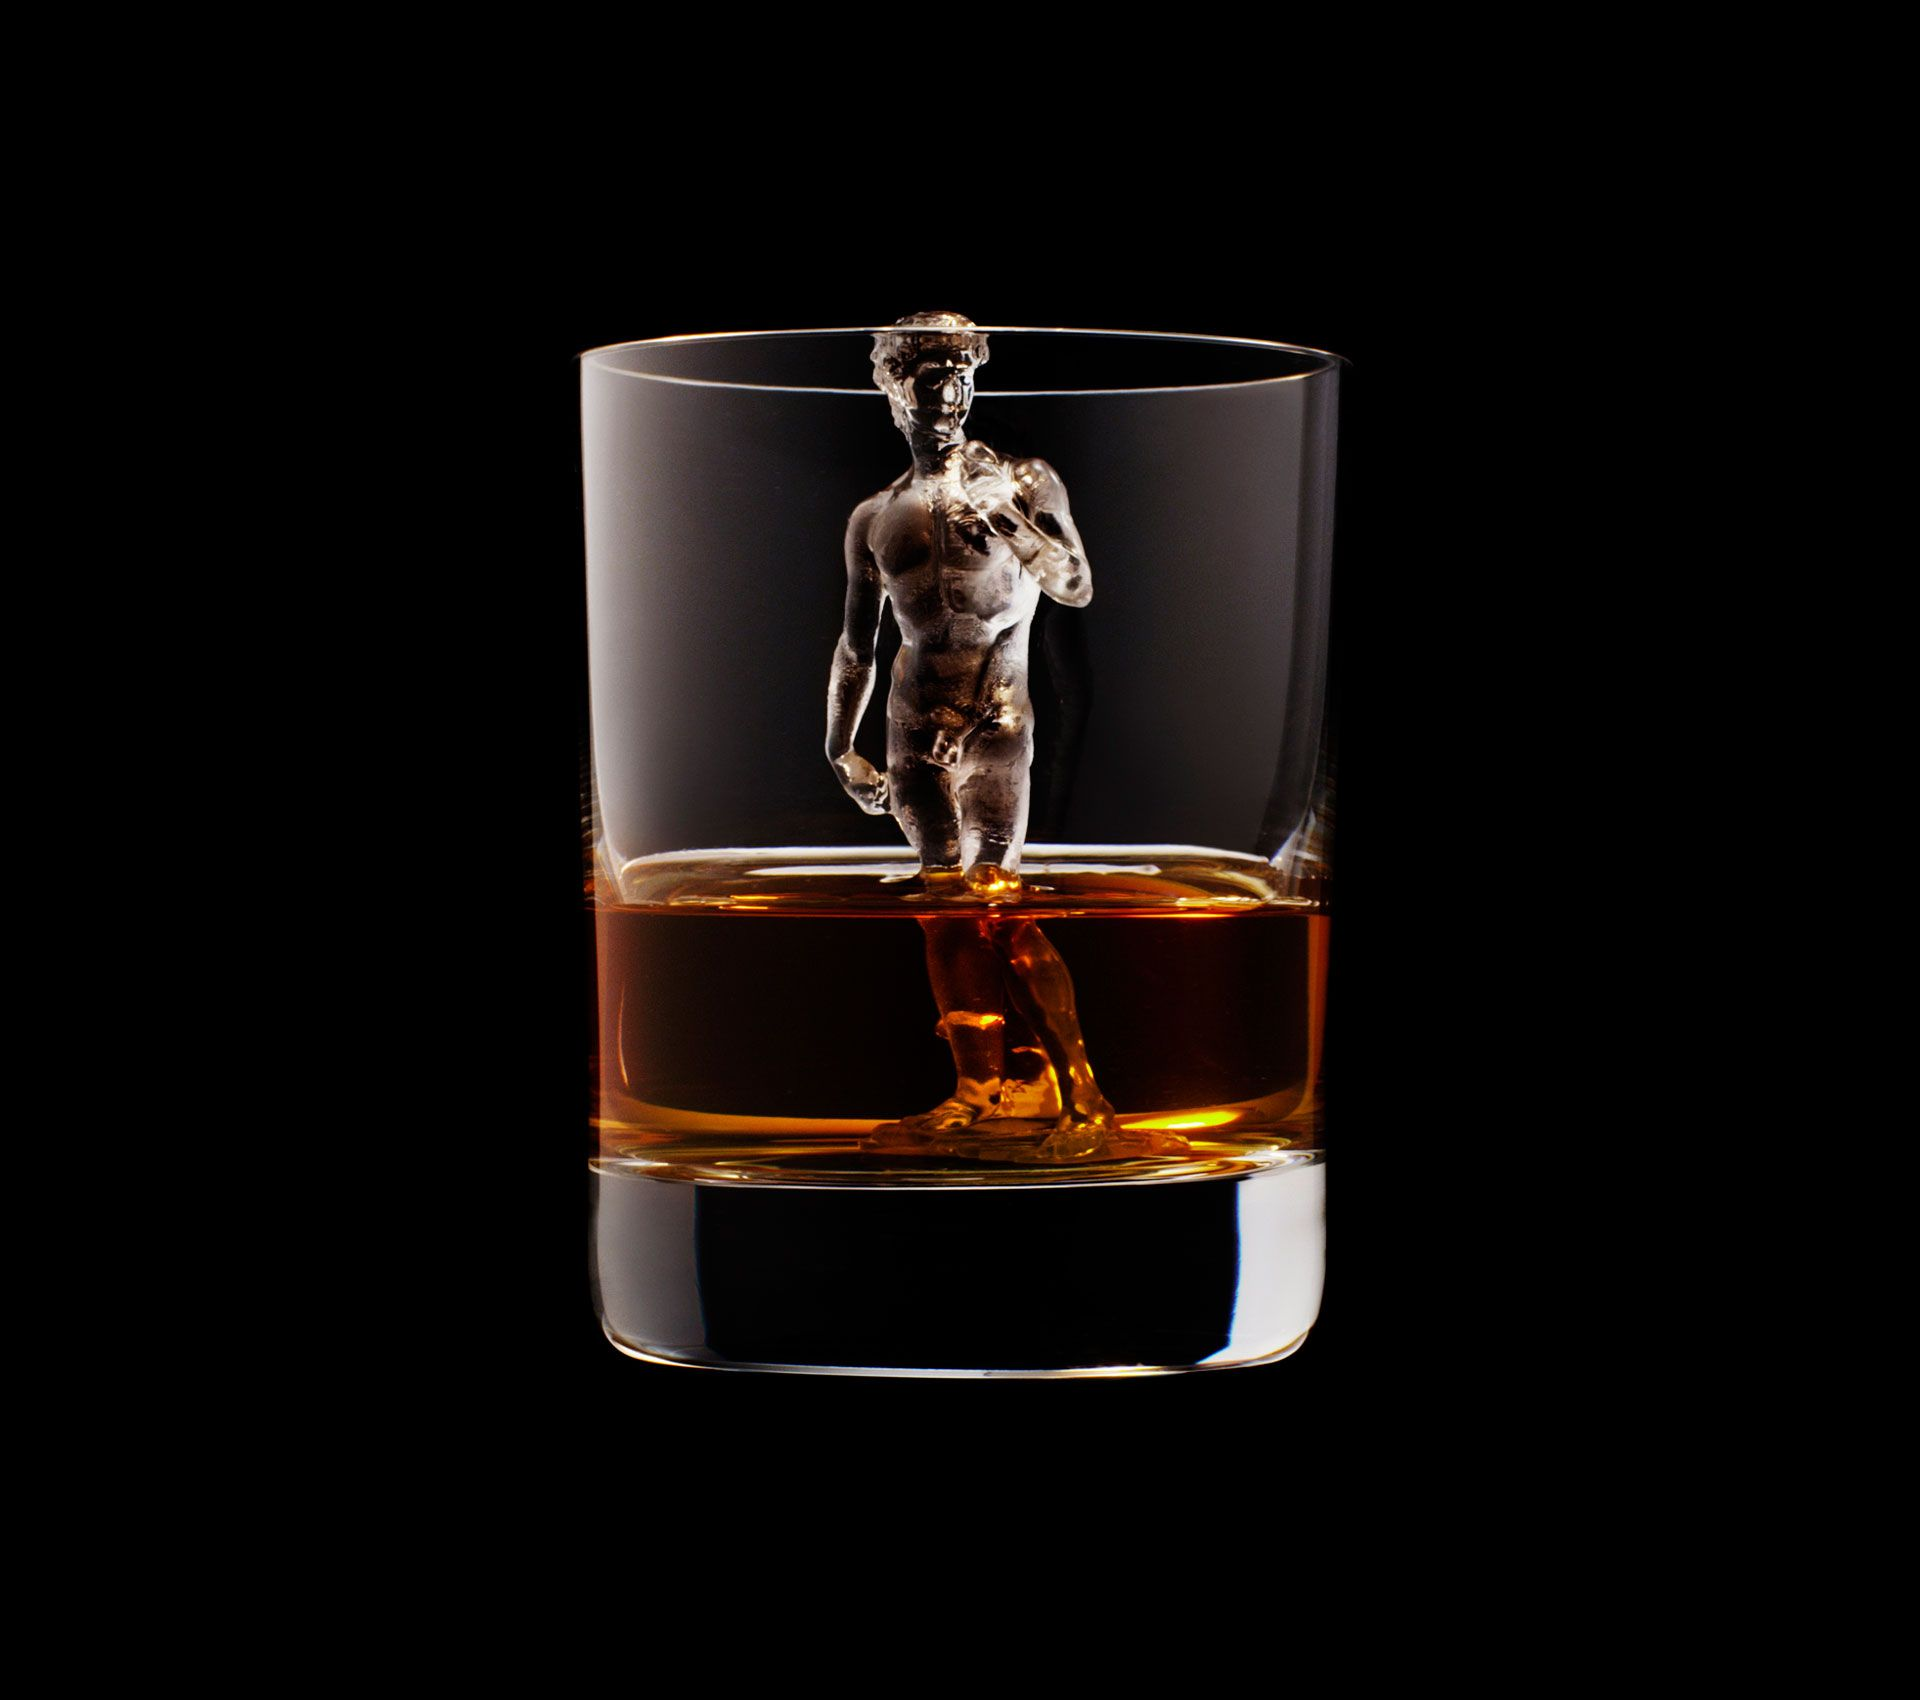 Suntory Whisky - 3D ice cube art